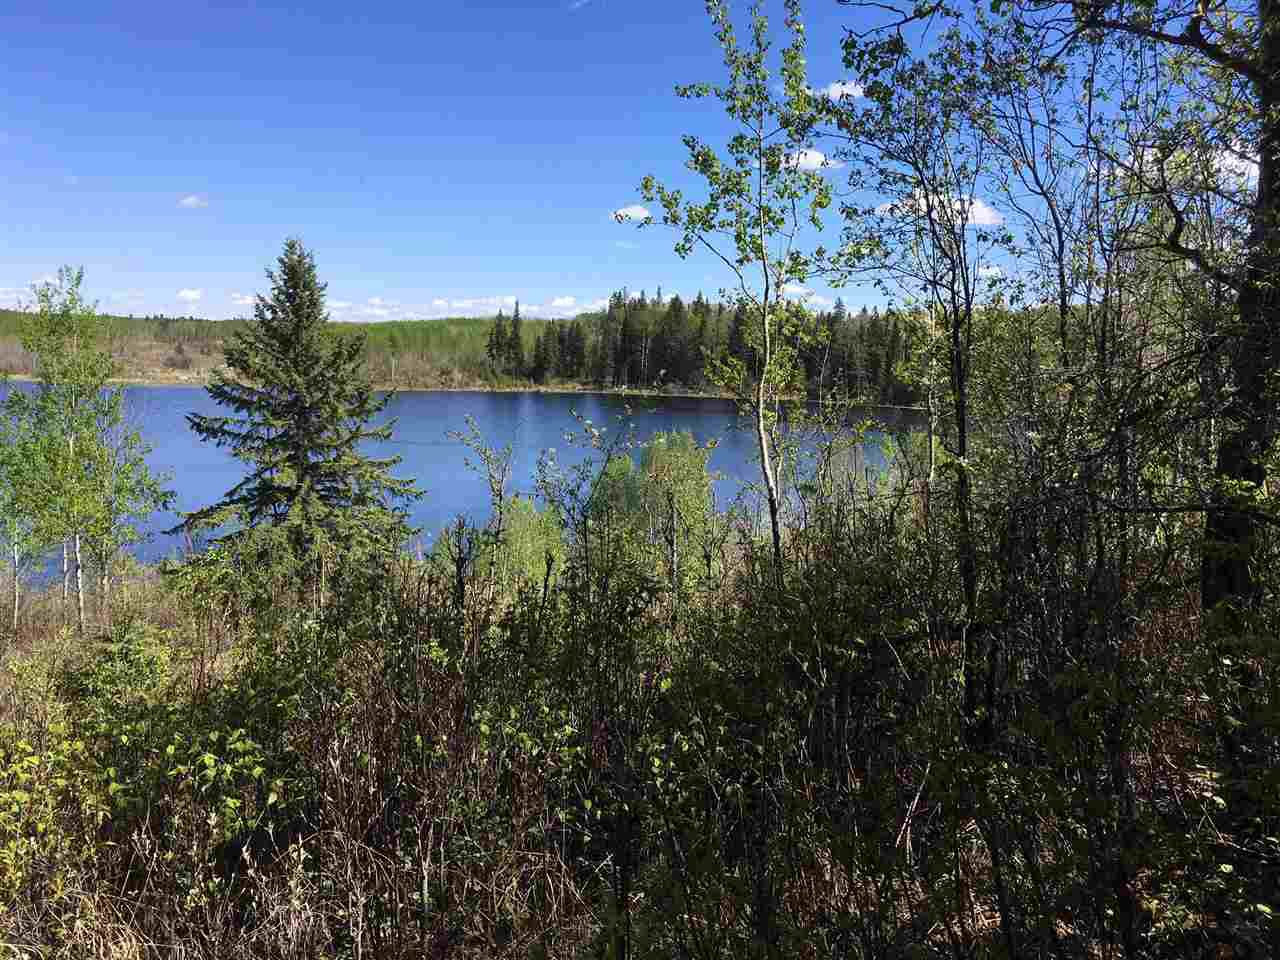 Main Photo: S1/2 SW17-57-1-W5: Rural Barrhead County Rural Land/Vacant Lot for sale : MLS®# E4217105